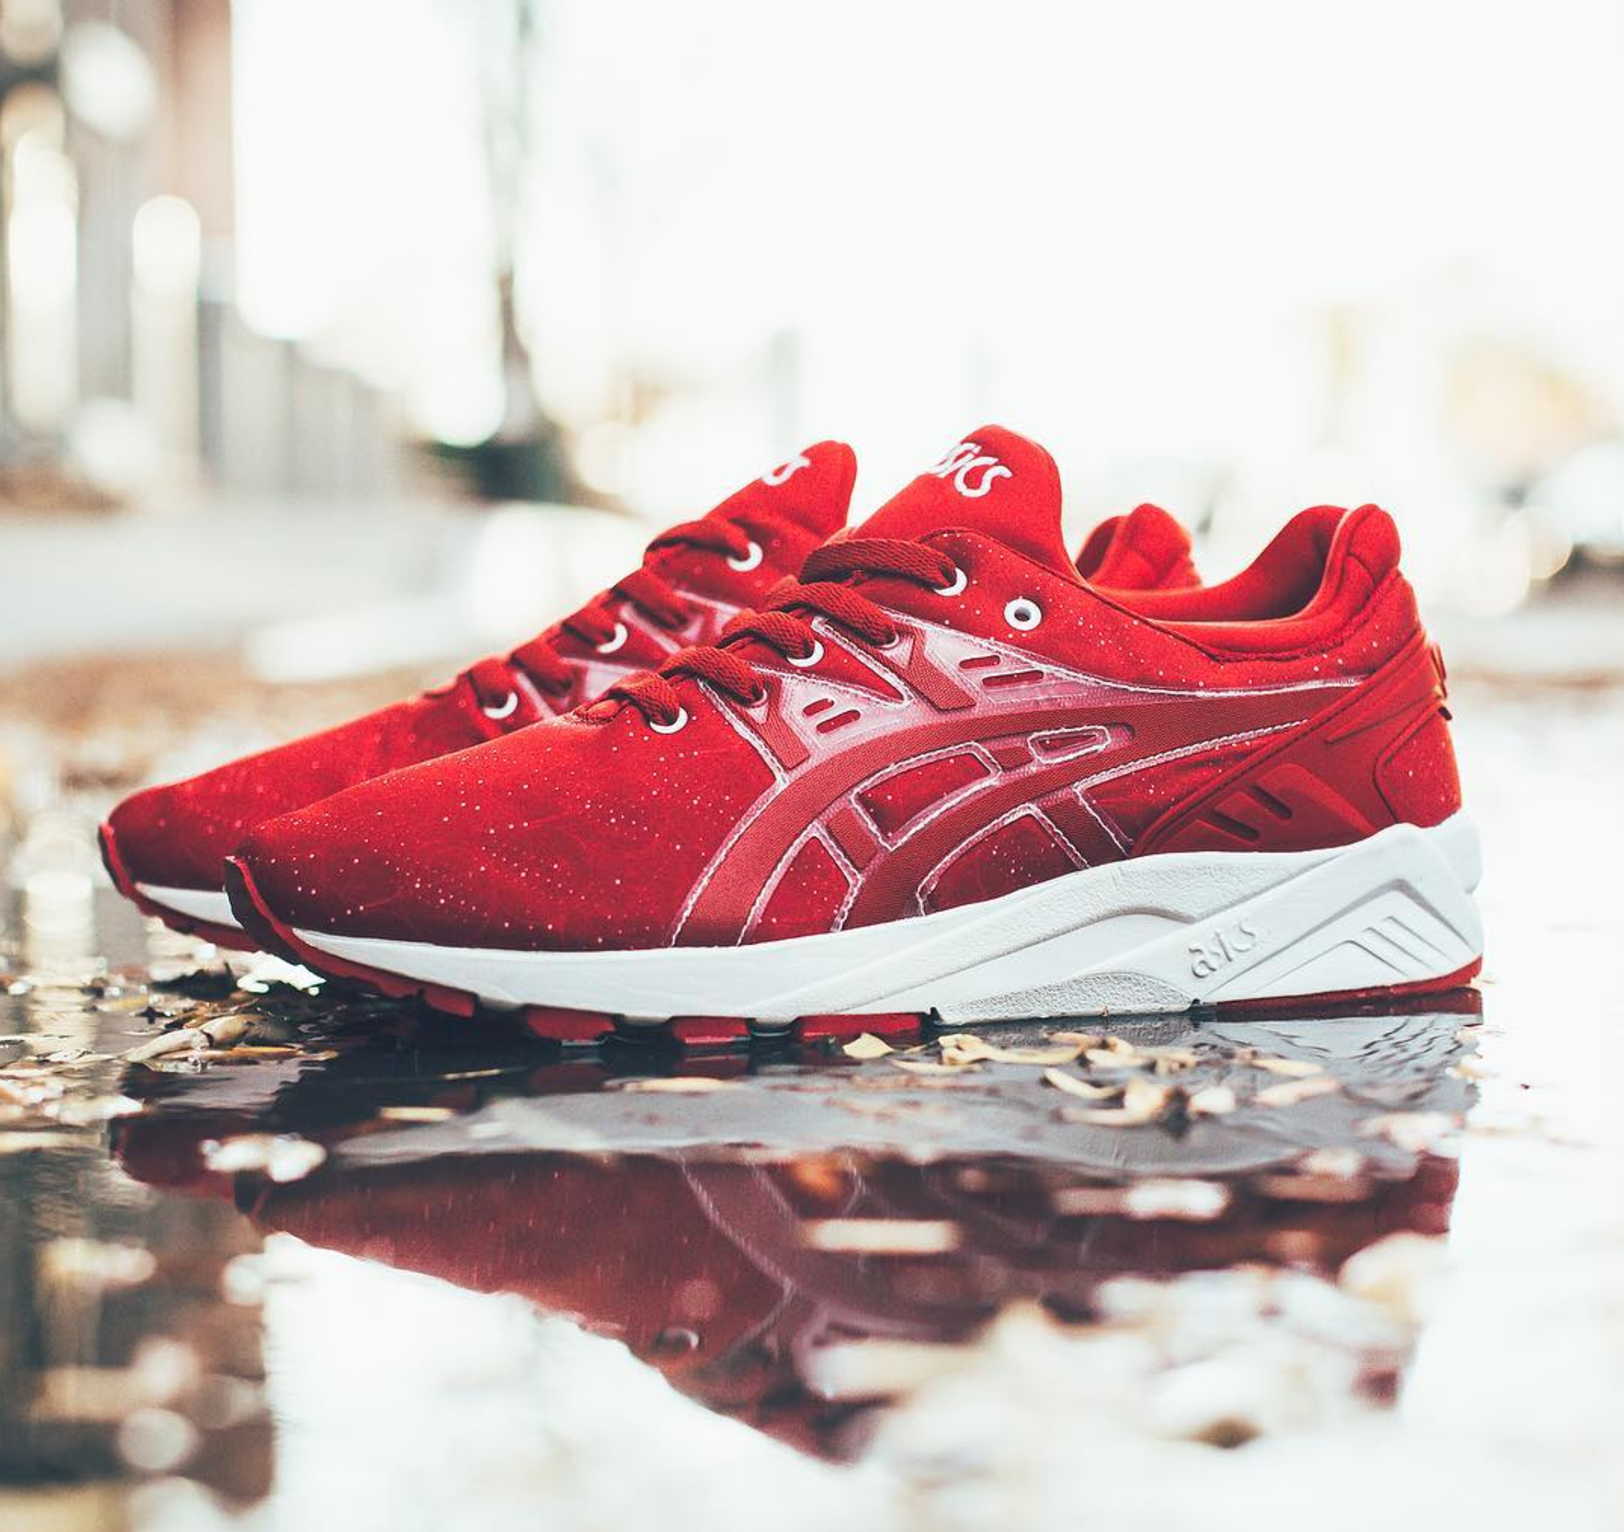 asics tiger gel-kayano trainer evo